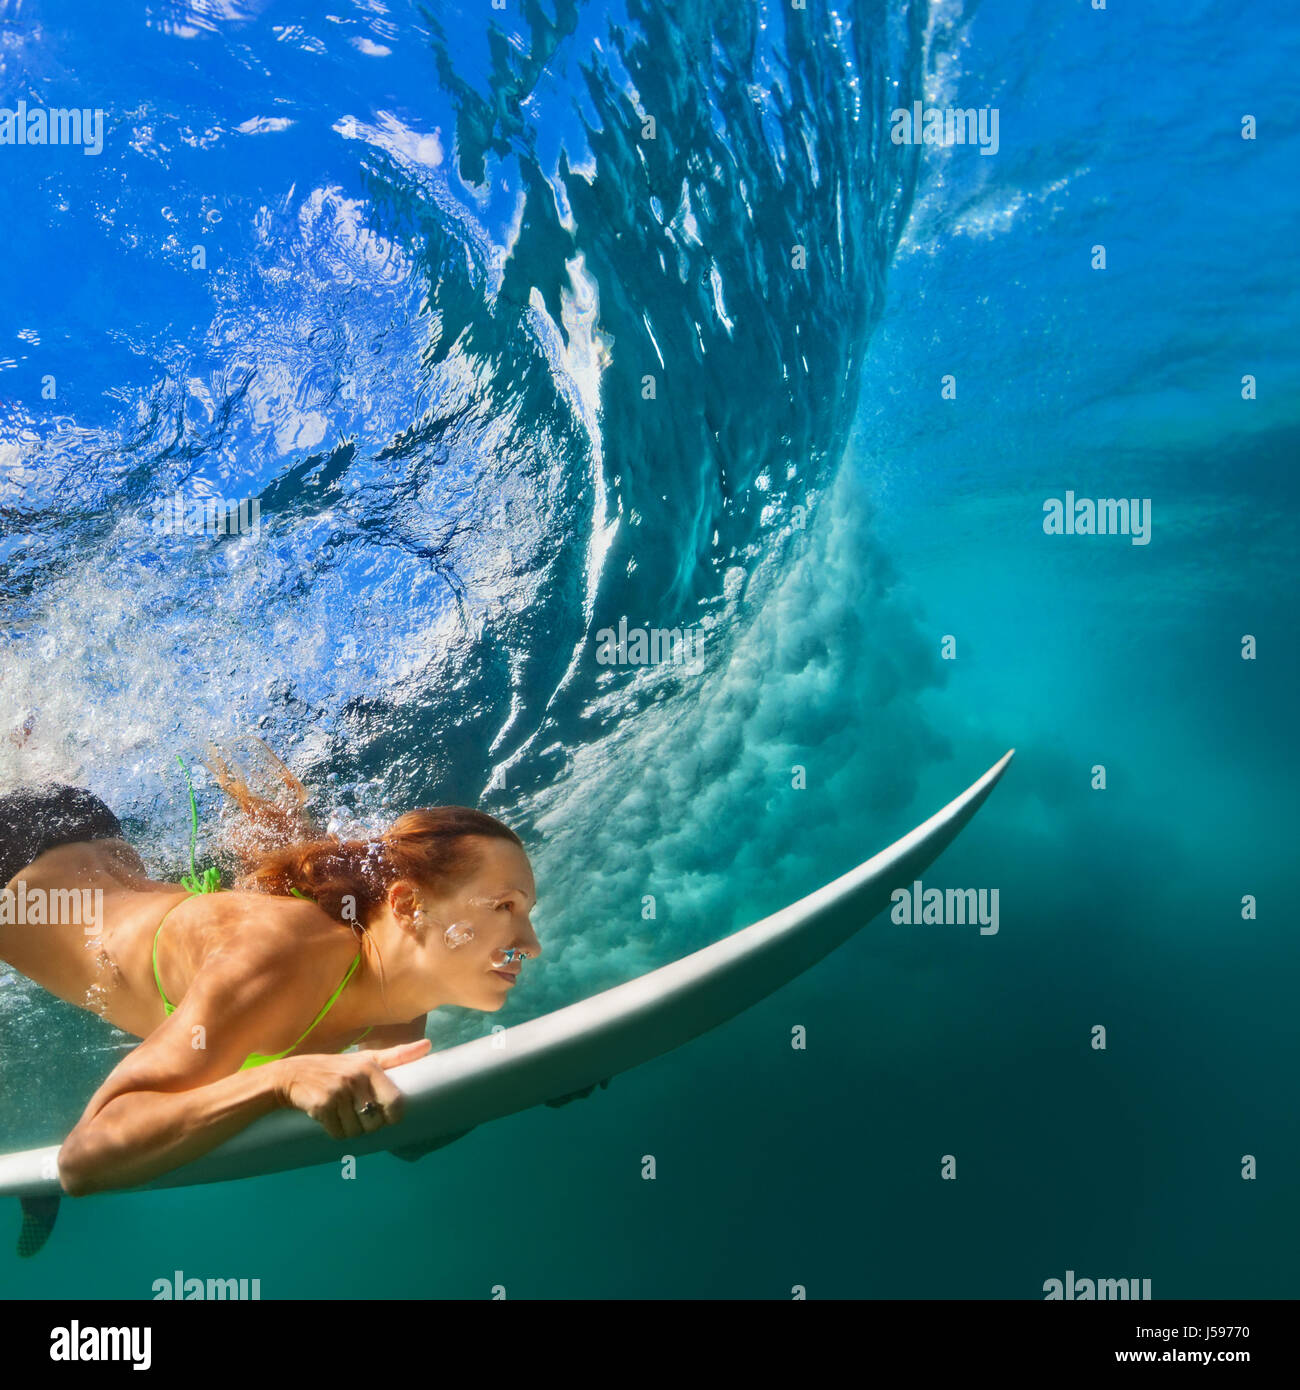 Active girl in bikini in action. Surfer woman with surf board dive underwater under breaking big wave. Healthy lifestyle. - Stock Image